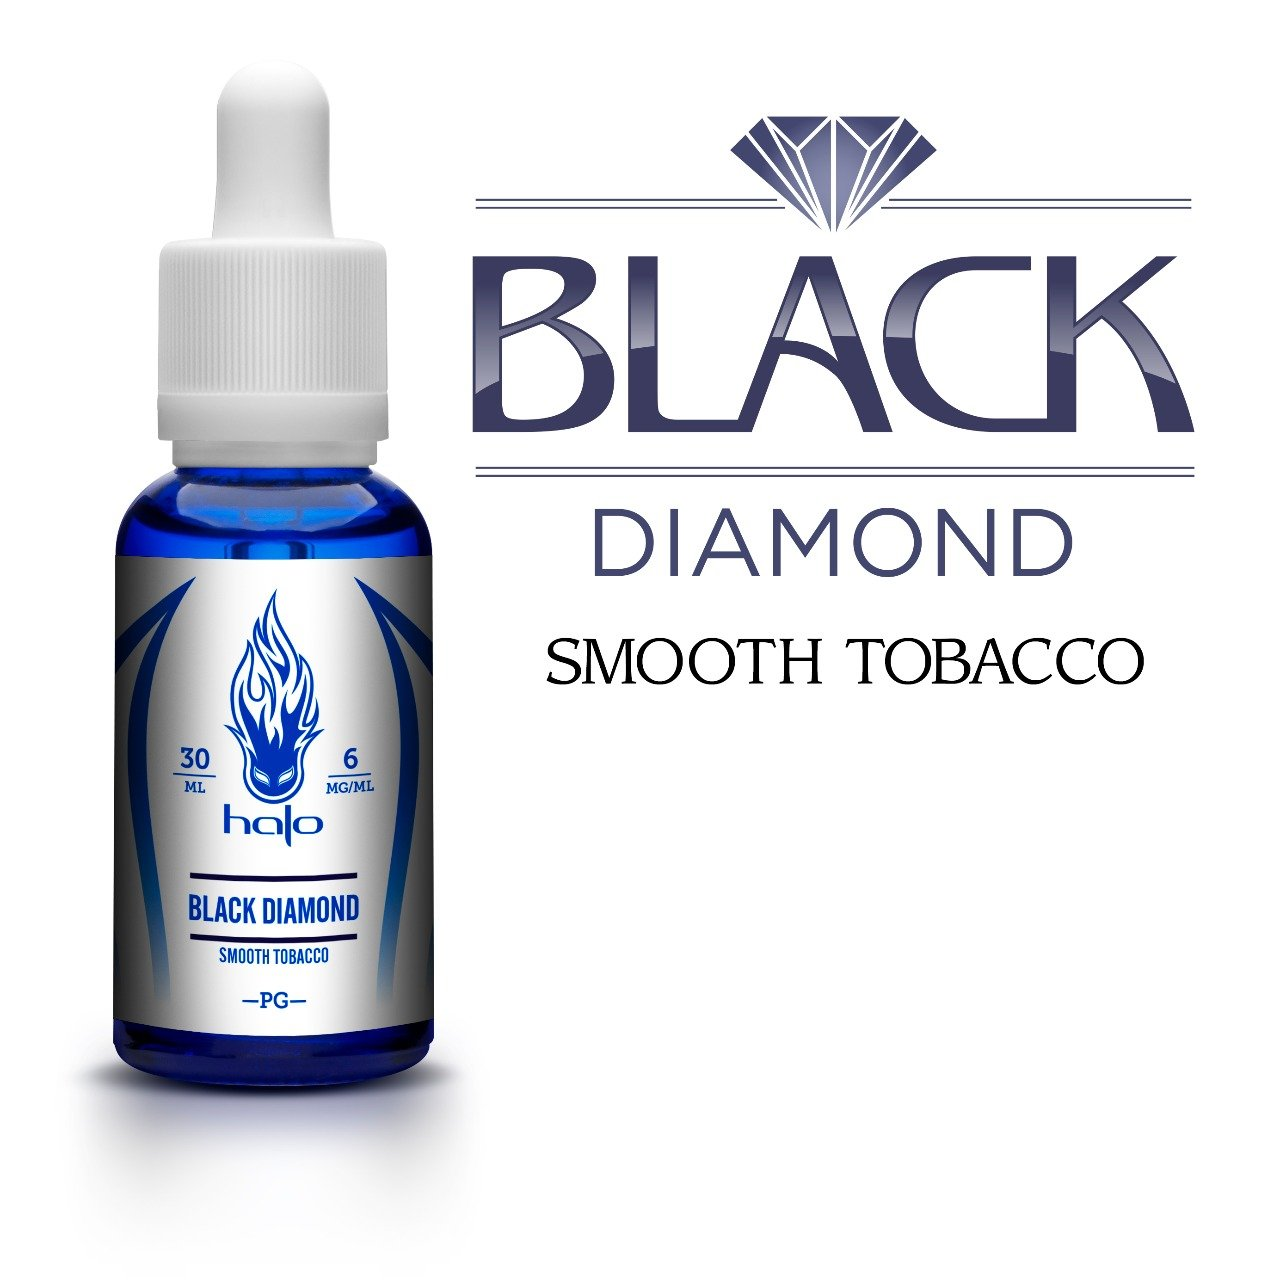 Líquido Black Diamond Smooth Tobacco - White Series  - Halo Cigs